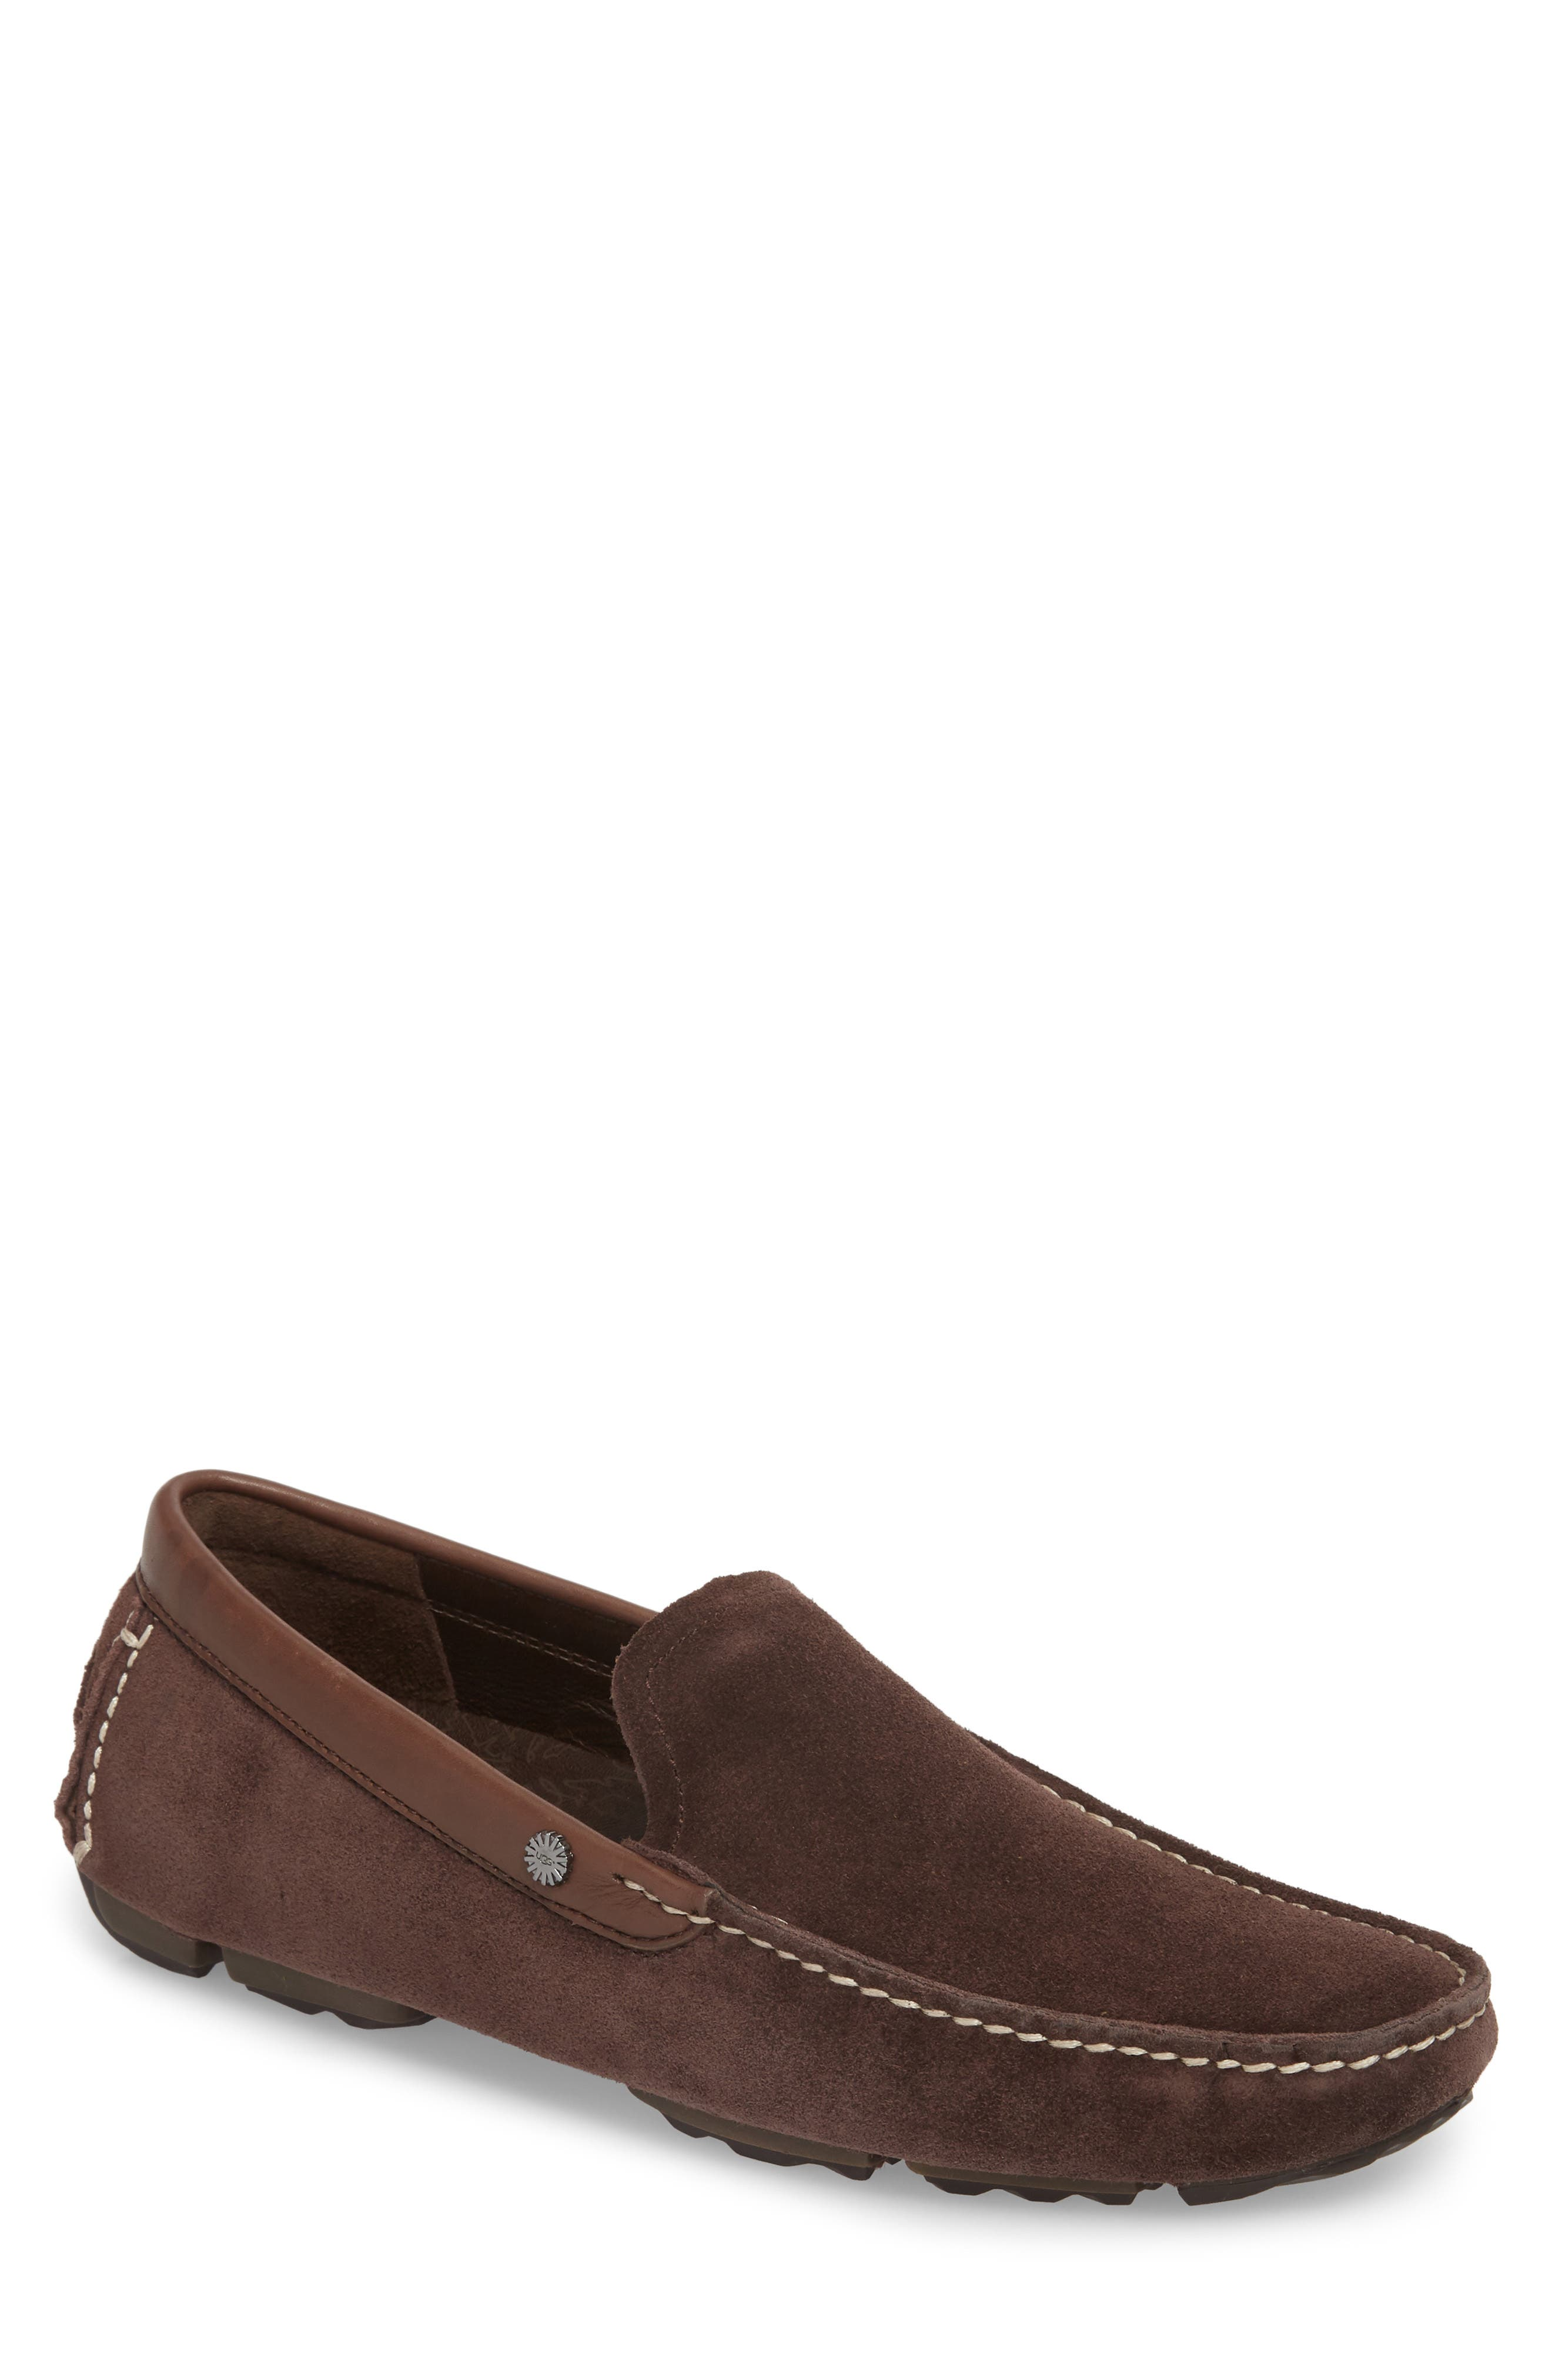 Bel-Air Driving Moccasin,                         Main,                         color, Stout Leather